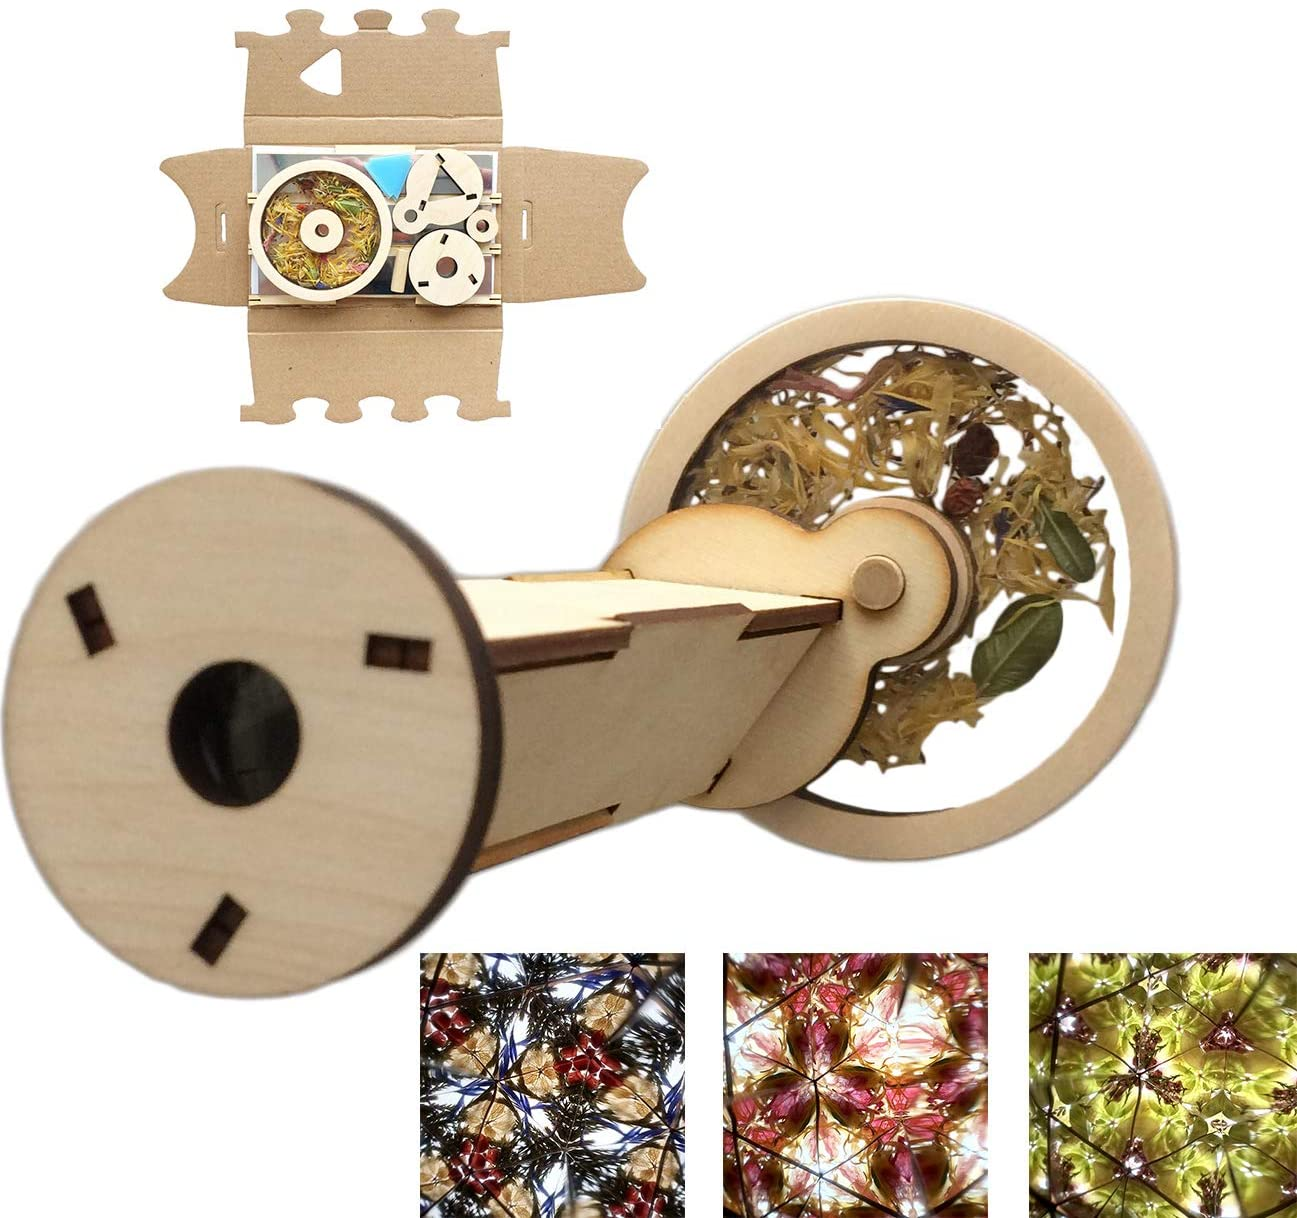 HAPPER STUDIO Wood Kaleidoscope Filled with Flowers, DIY Assembly Kit of 10 Pieces